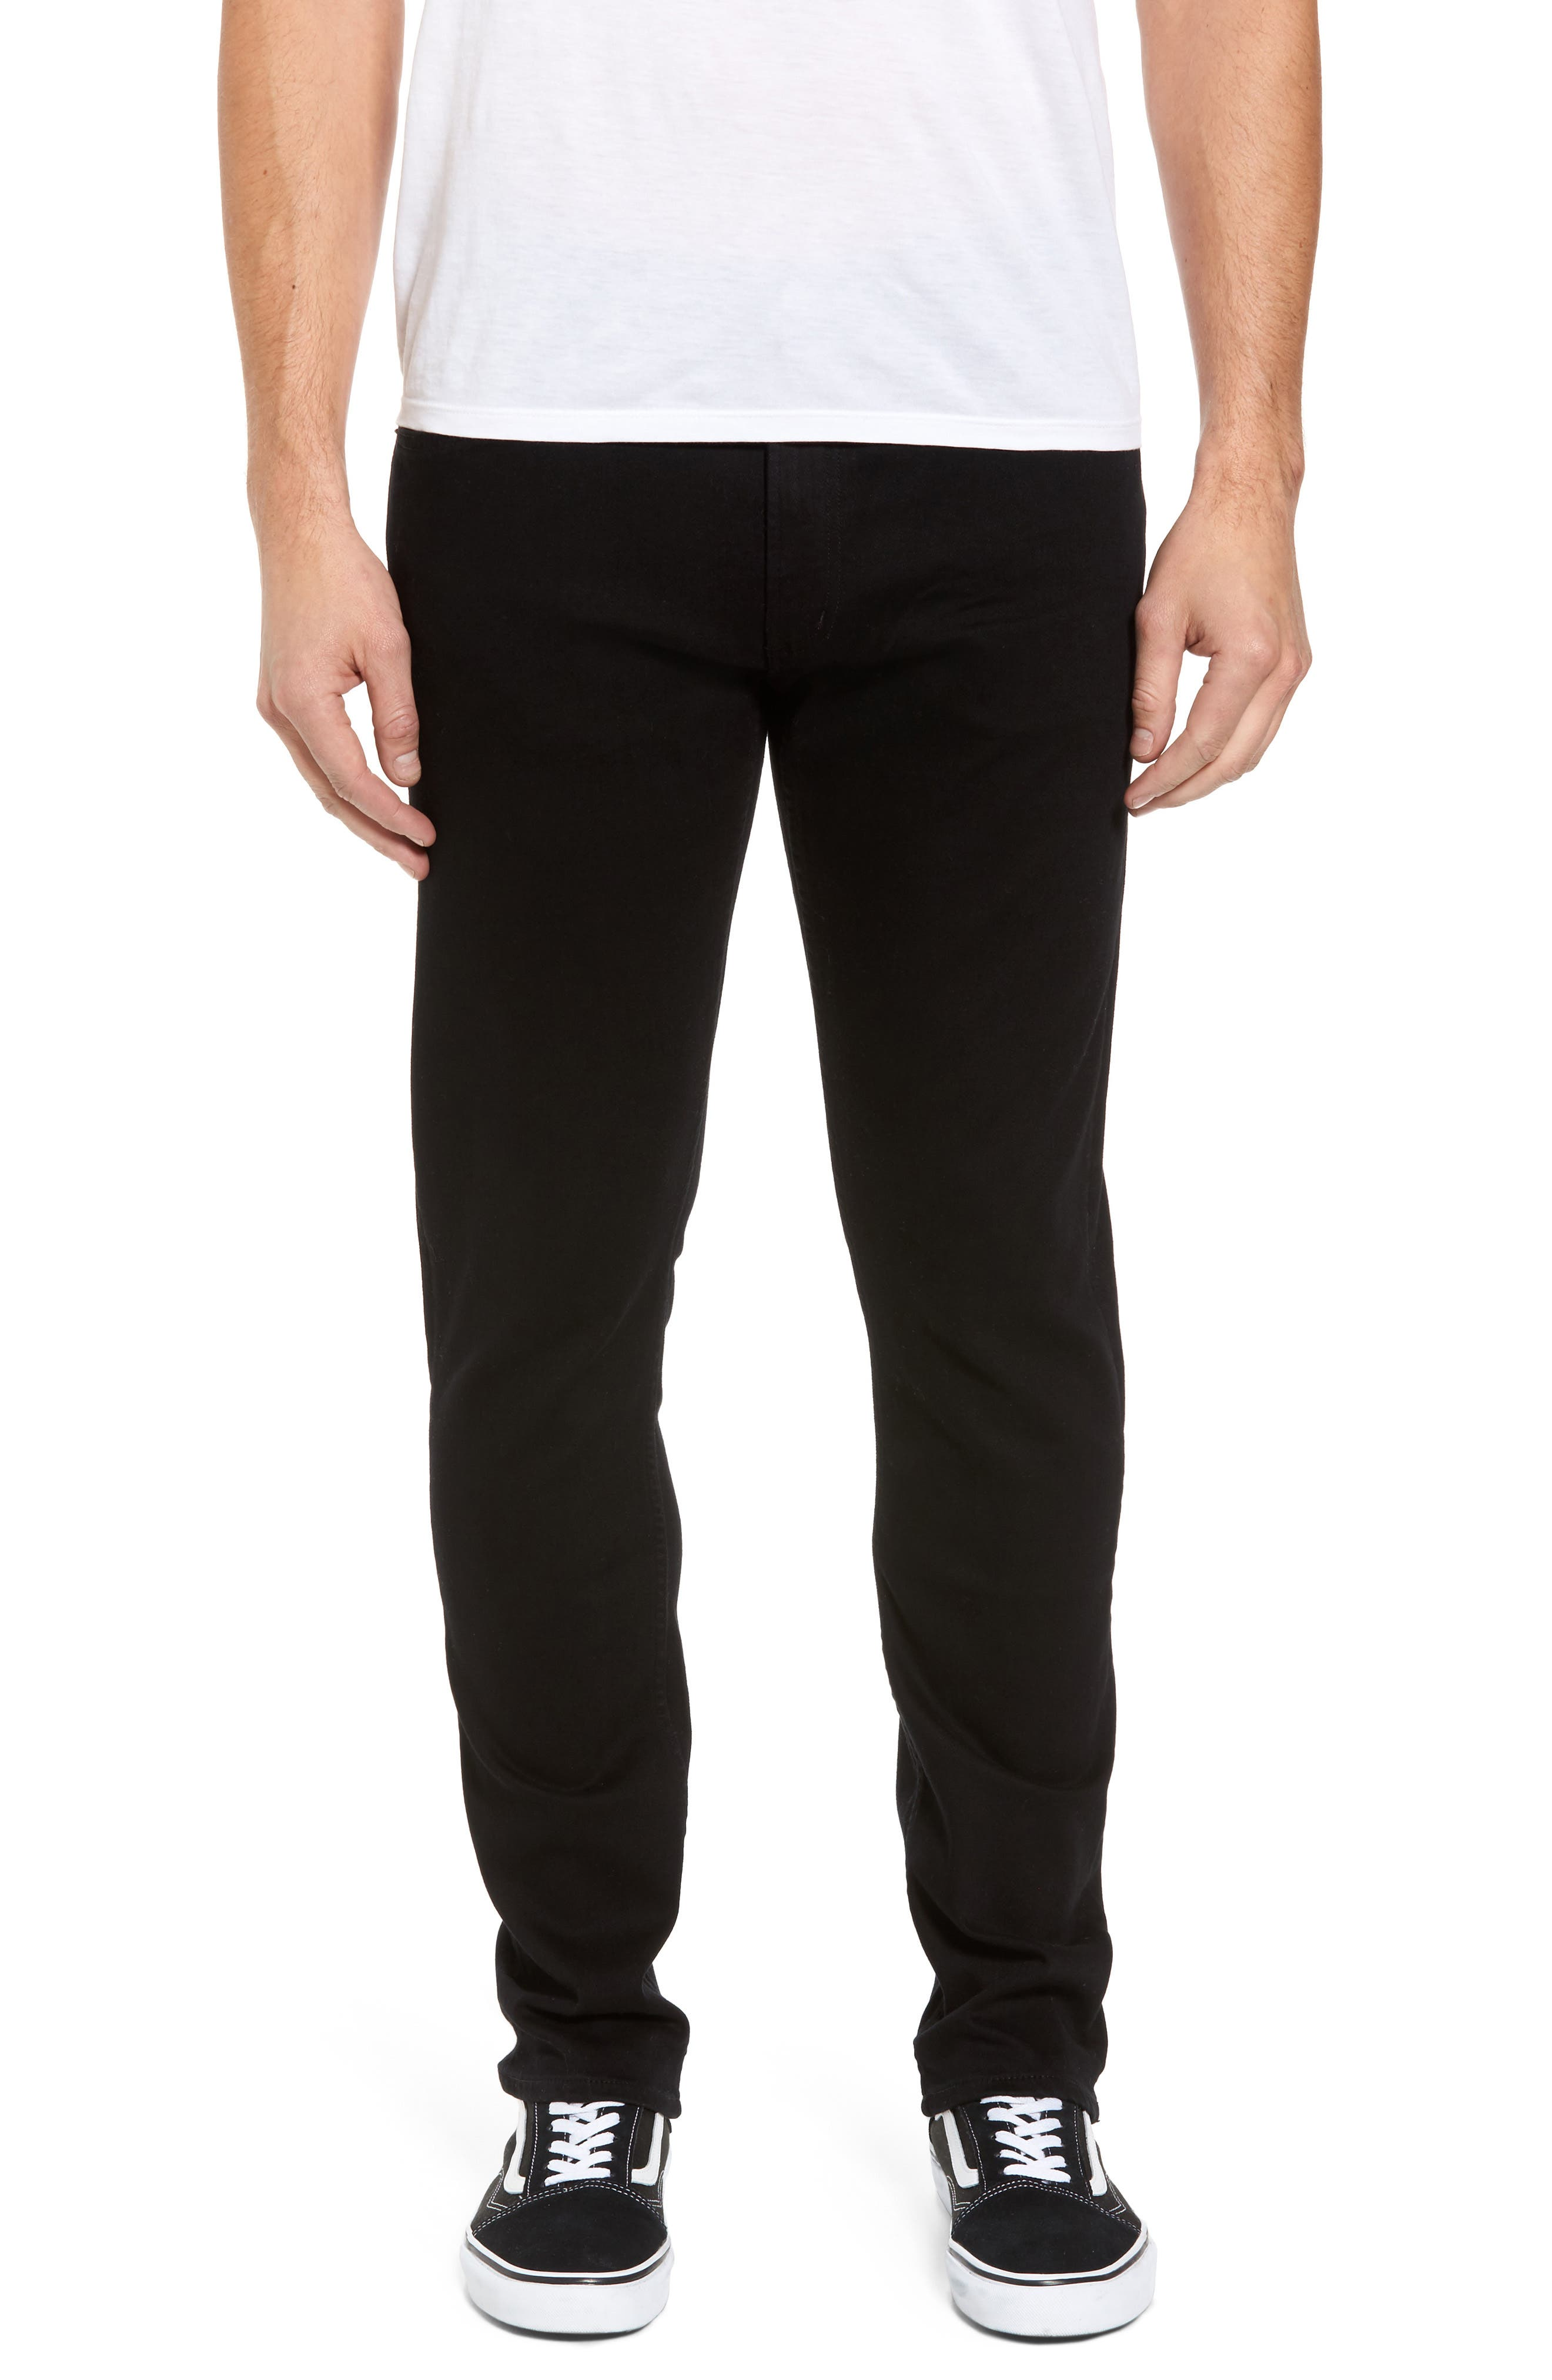 Bowery Slim Fit Jeans,                             Main thumbnail 1, color,                             007